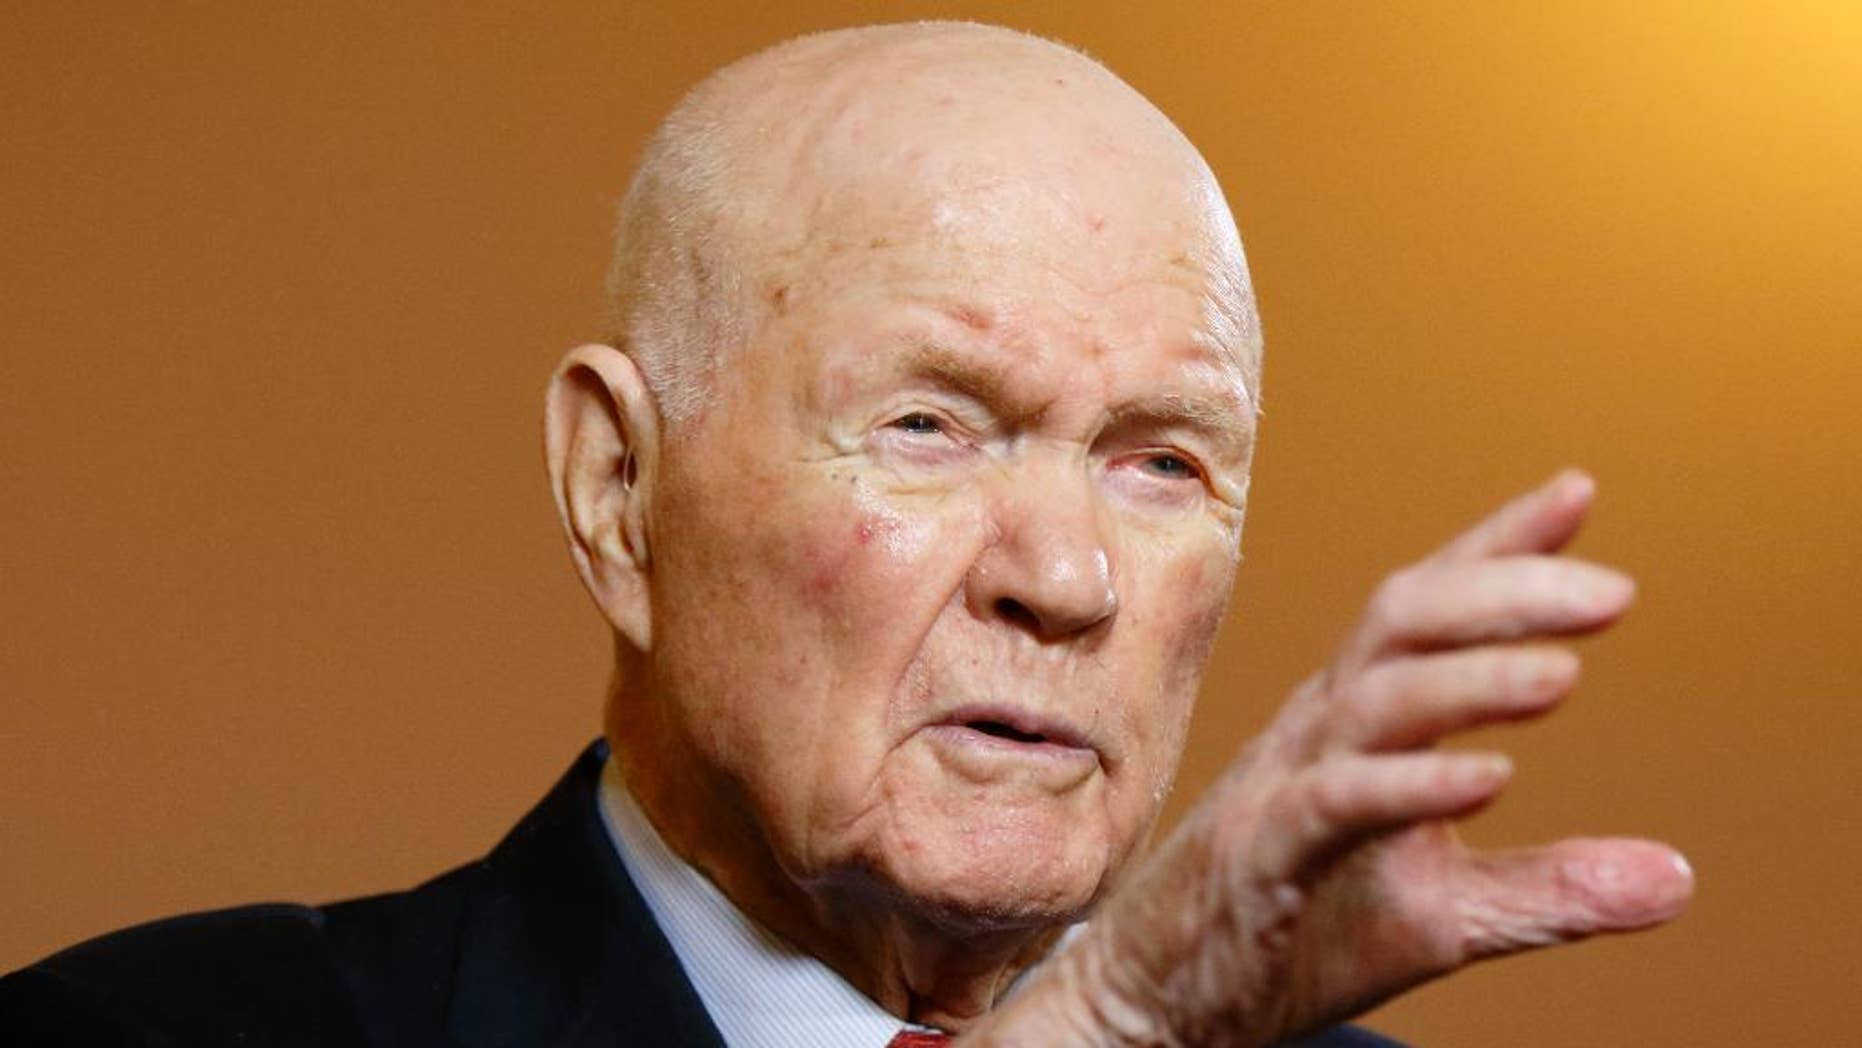 "In this photo taken on Thursday, May 14, 2015, former astronaut and senator John Glenn gestures while answering questions during an exclusive interview with The Associated Press at the Ohio Statehouse. Glenn said facts about scientific discovery should be taught in schools - and that includes evolution. The 93-year-old said that he sees no contradiction between believing in God and believing in evolution. When he went back into space in 1998, he had announced that ""to look out at this kind of creation out here and not believe in God is to me impossible.""  (AP Photo/Paul Vernon)"